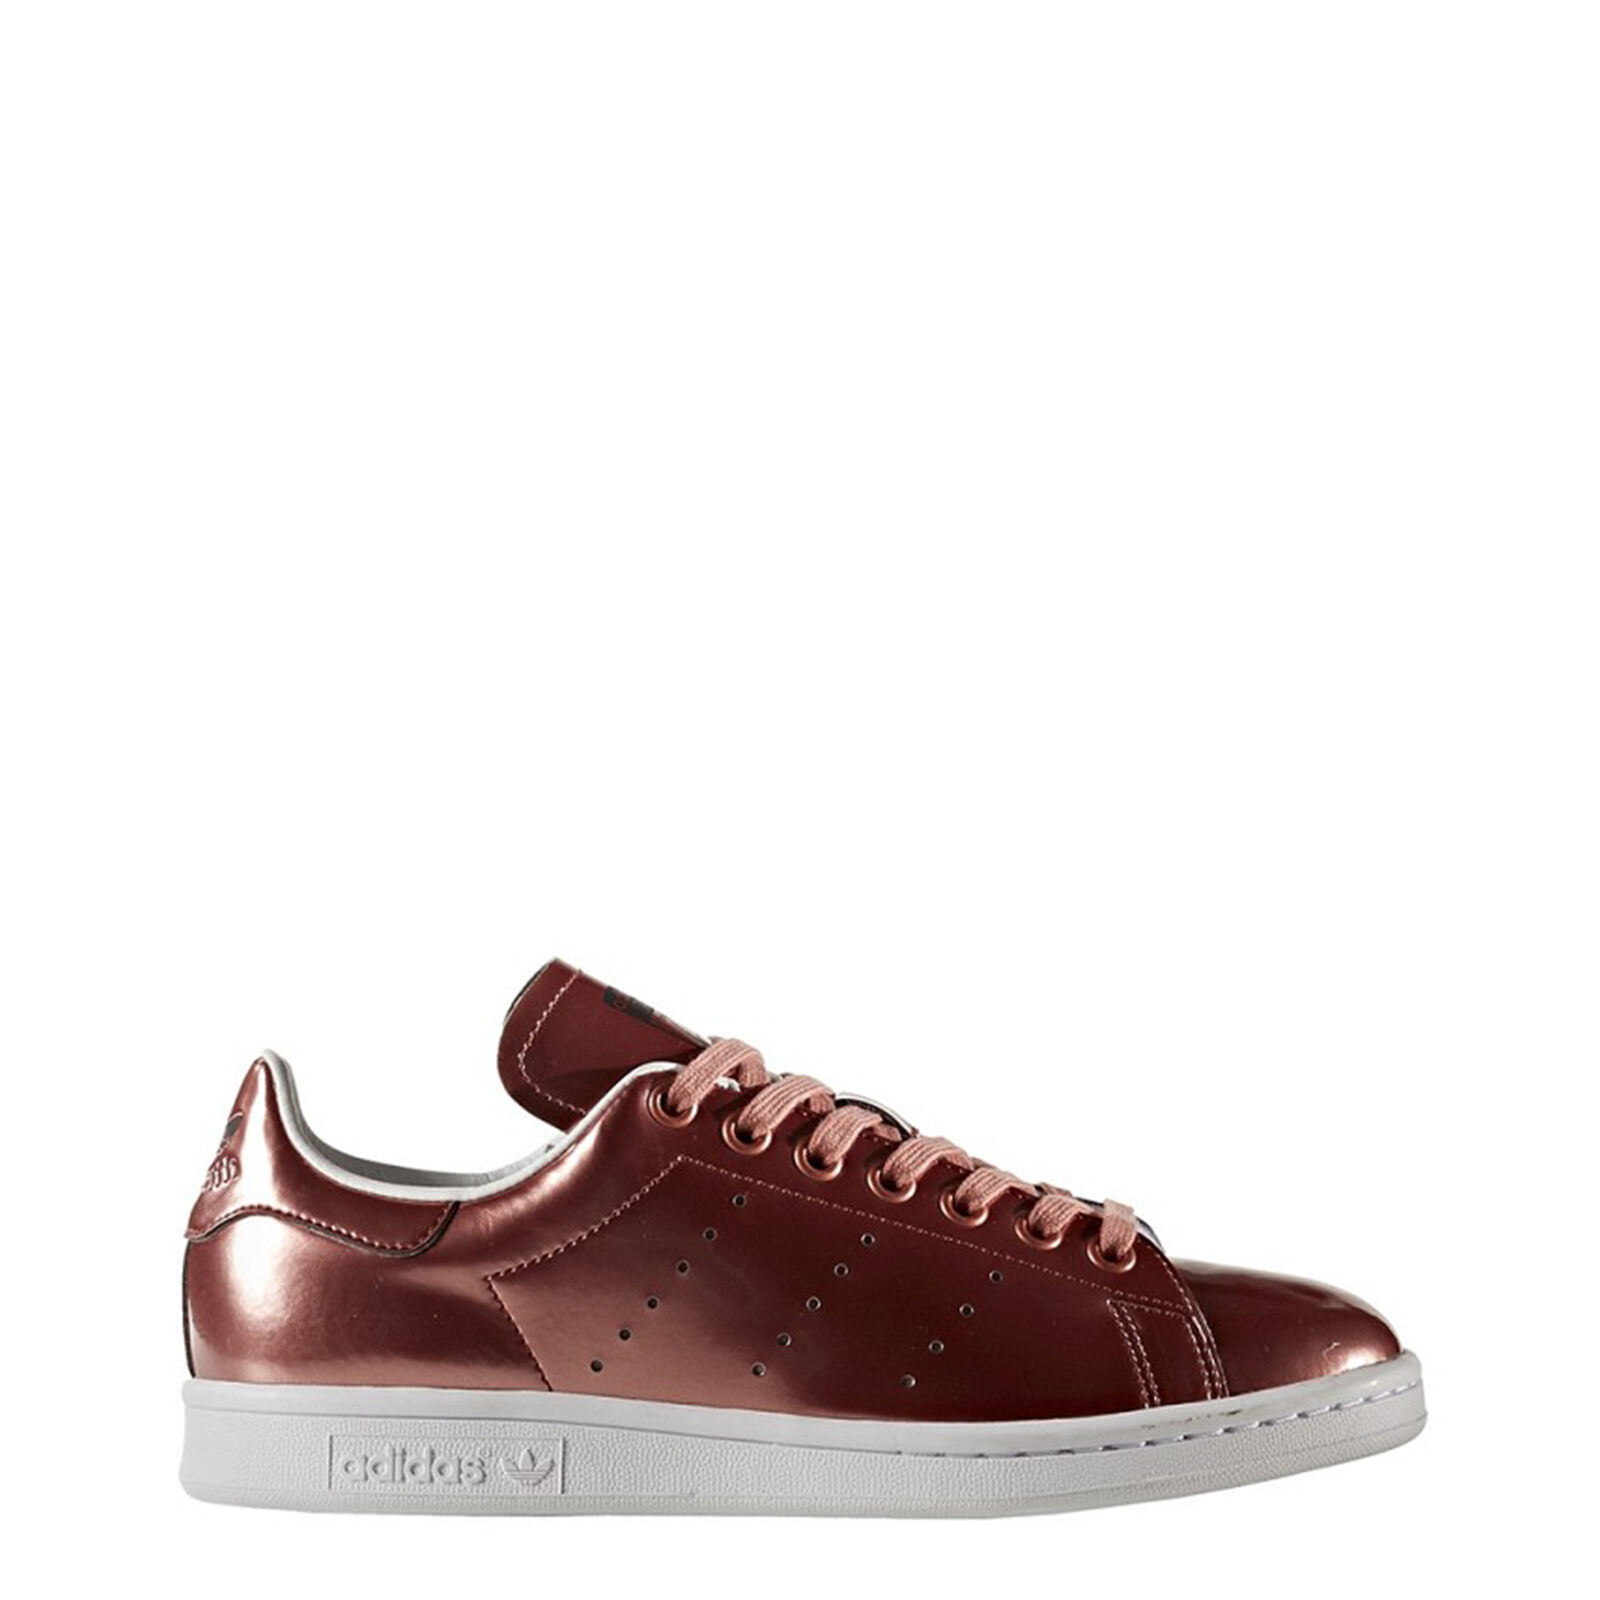 Adidas TurnSchuhe StanSmith, Unisex/Damen Weiß/Rot Leder low-Top Sneakers